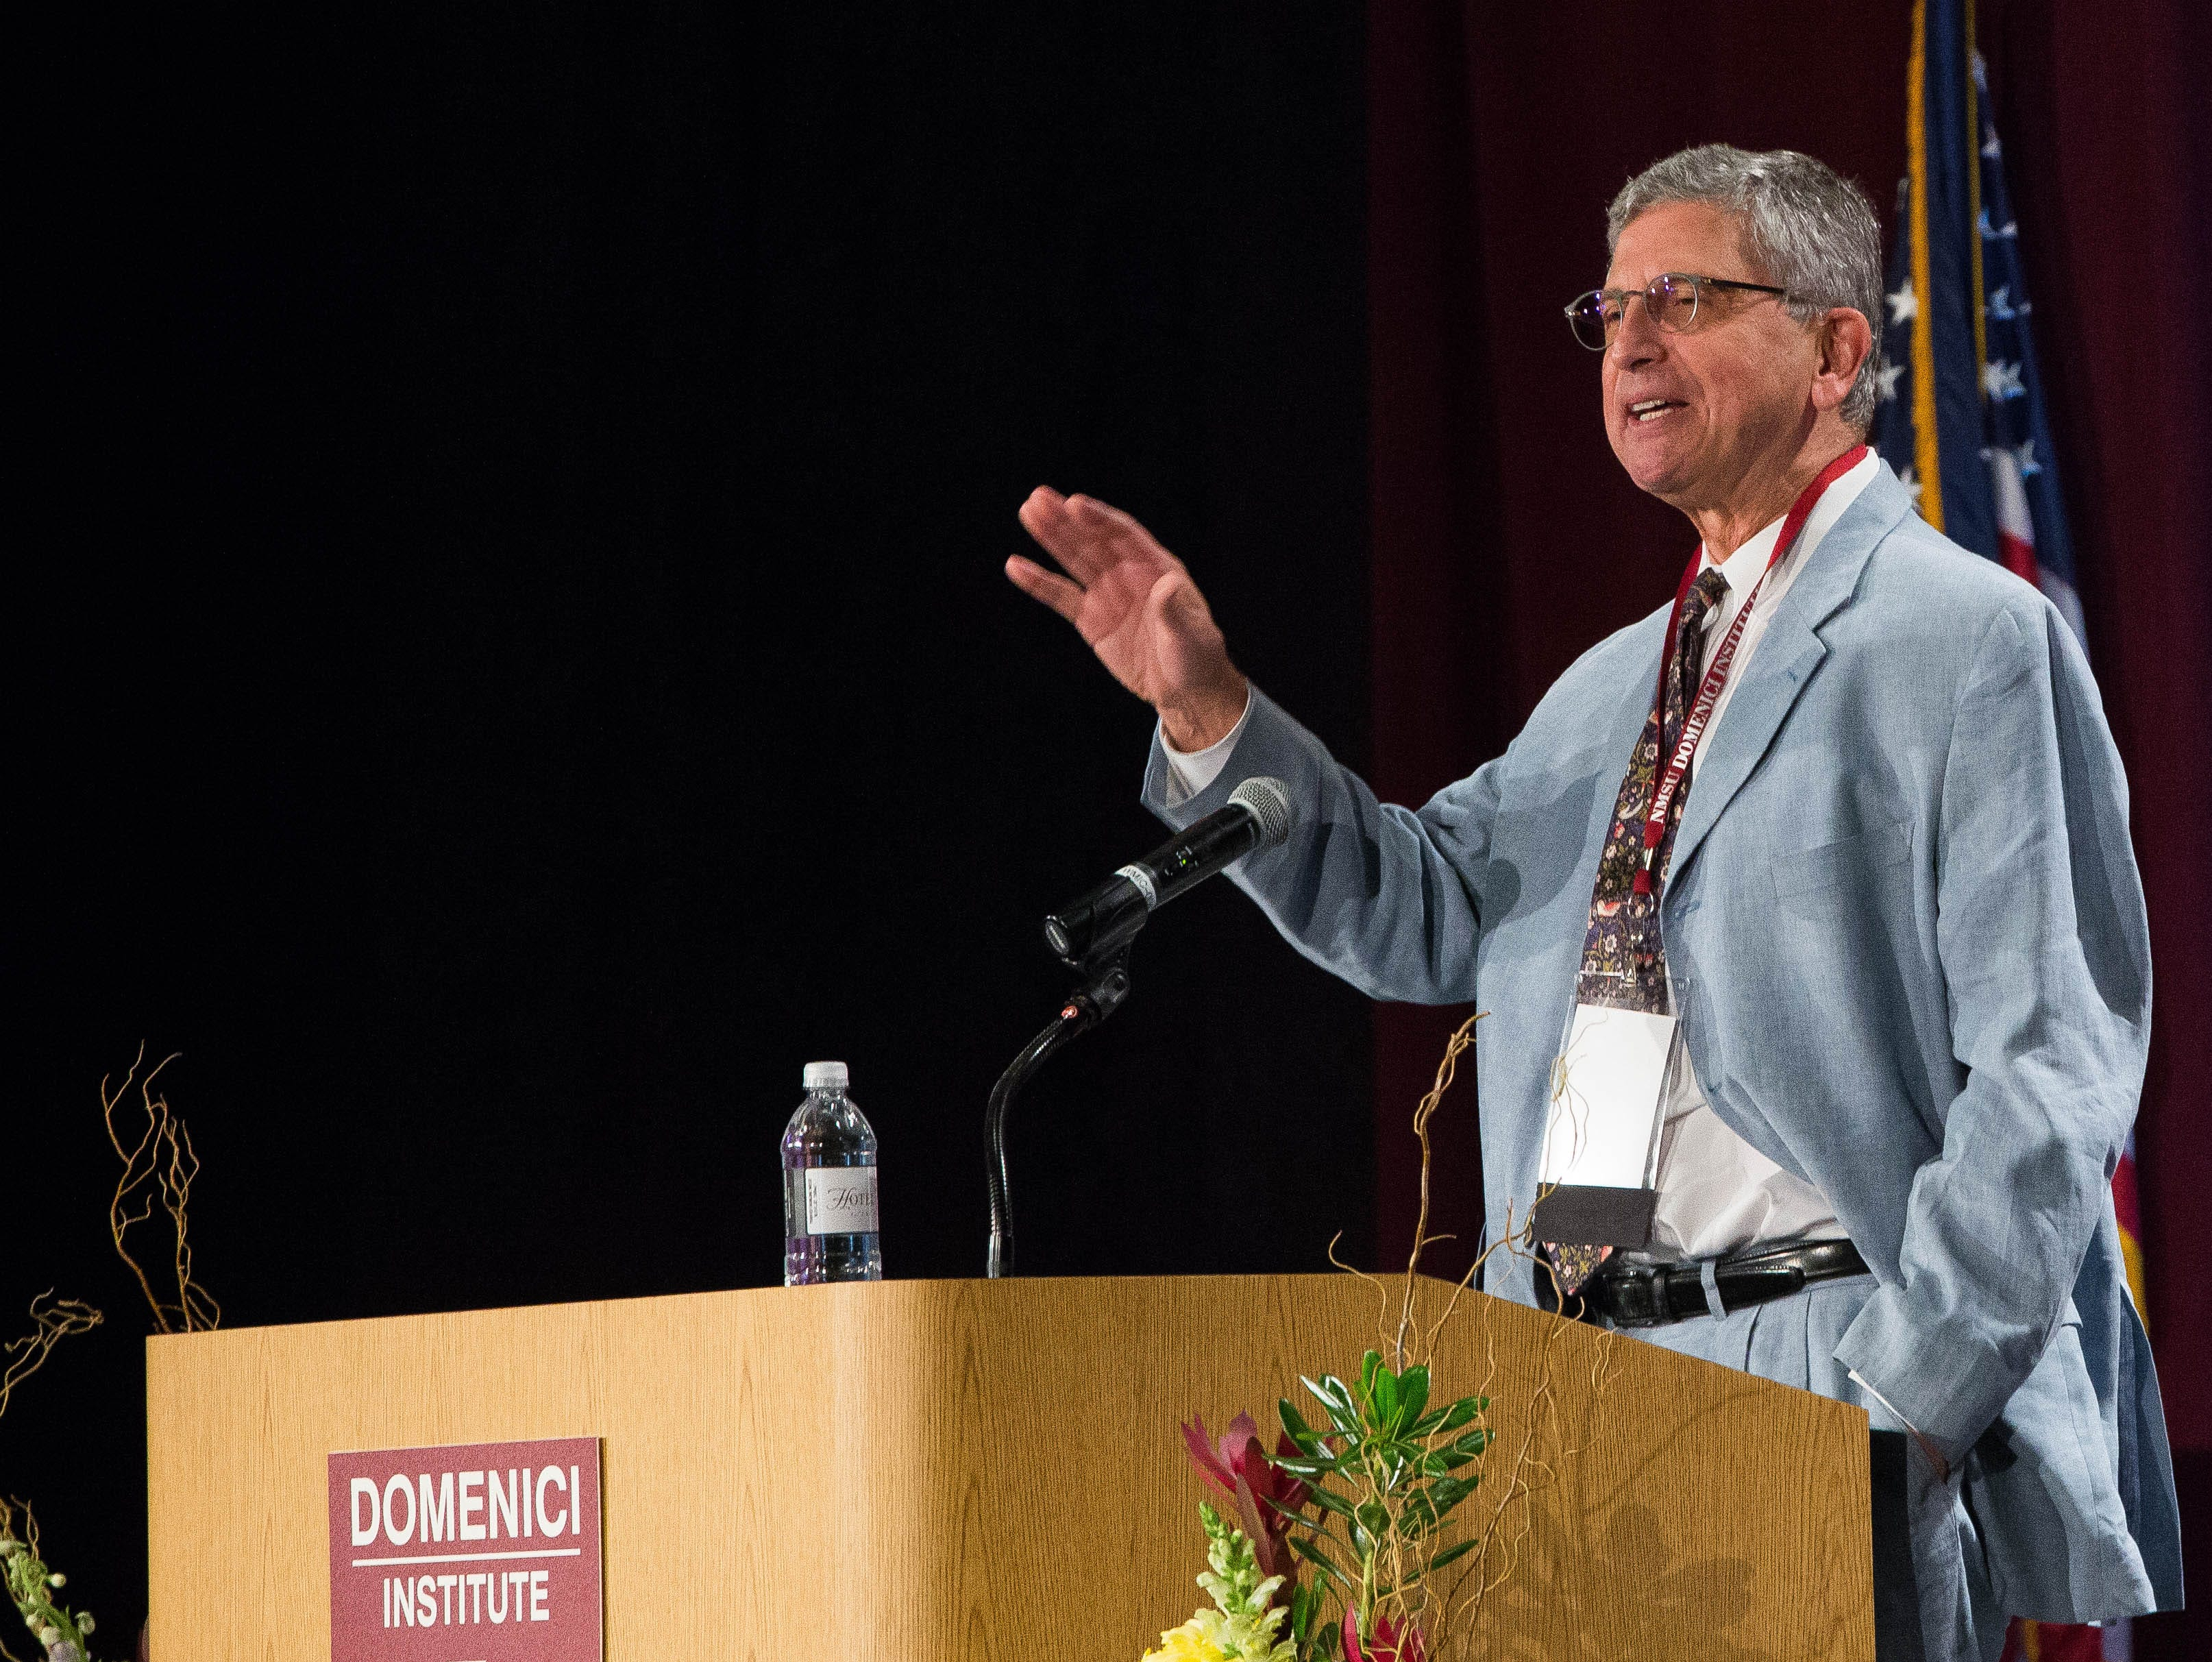 Edward Schumacher-Matos, director of the Edward R. Murrow Center, addresses disunity in the country and warned that the American experiment might not last during the first day of the 2018 Domenici Public Policy Conference Wednesday, Sept. 12, 2018 at the Las Cruces Convention Center.